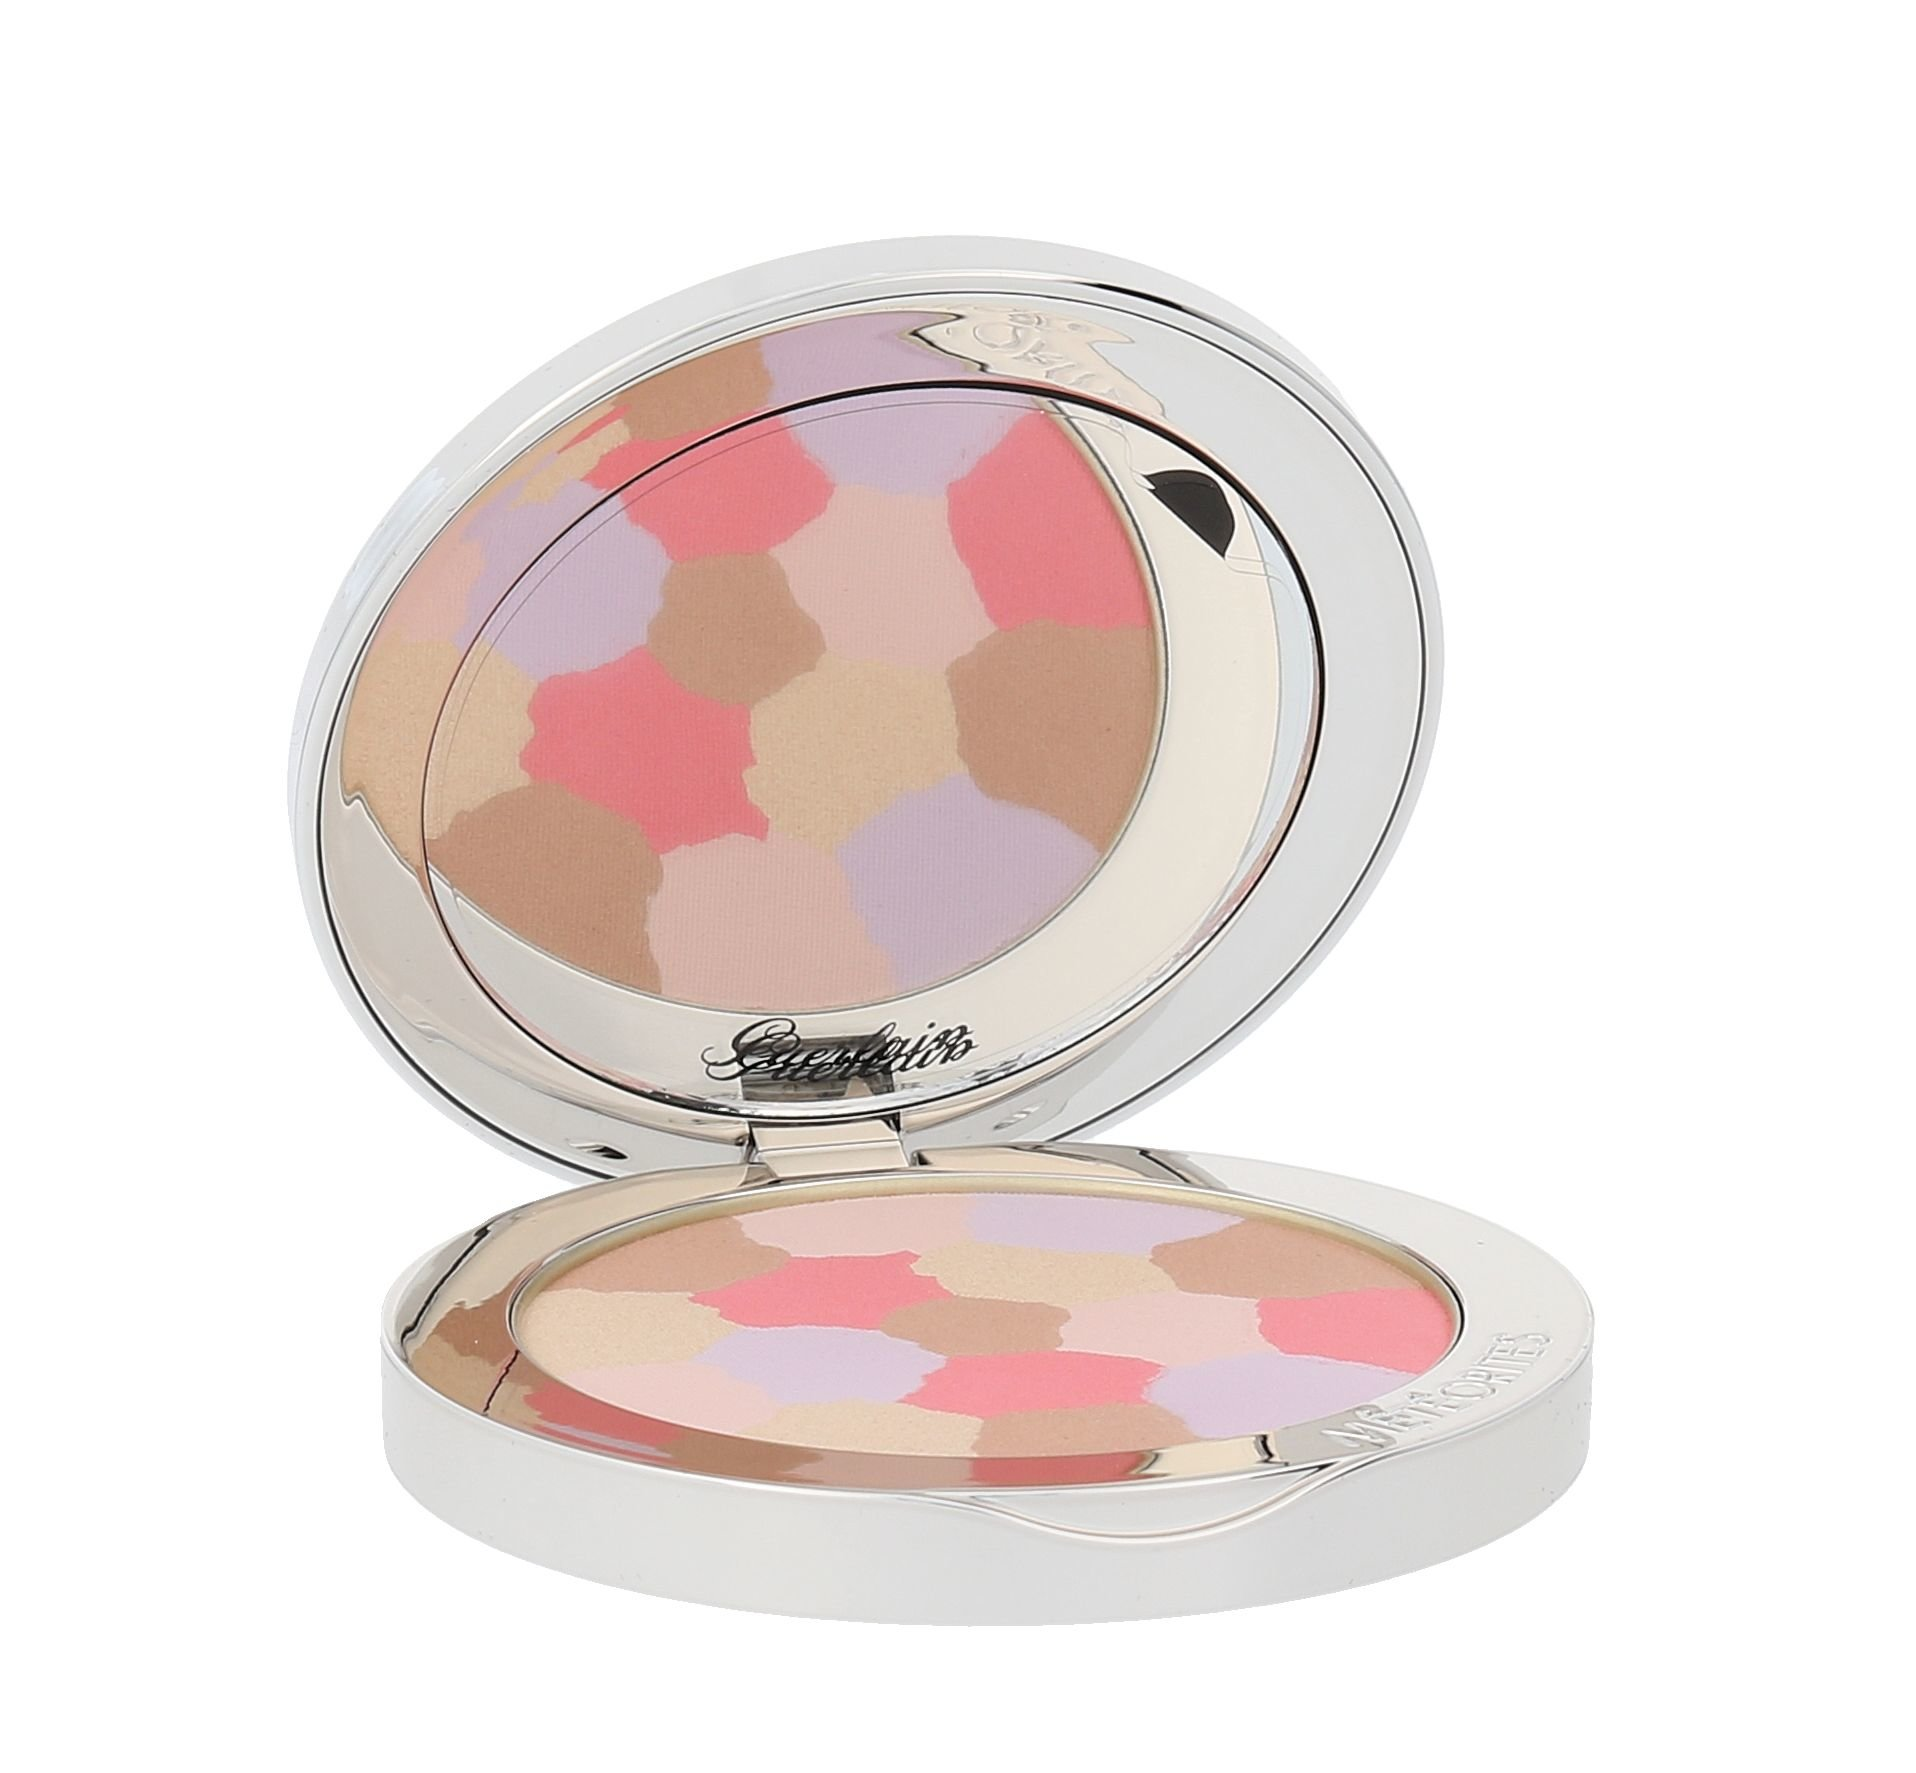 Guerlain Météorites Cosmetic 10ml 4 Golden Compact